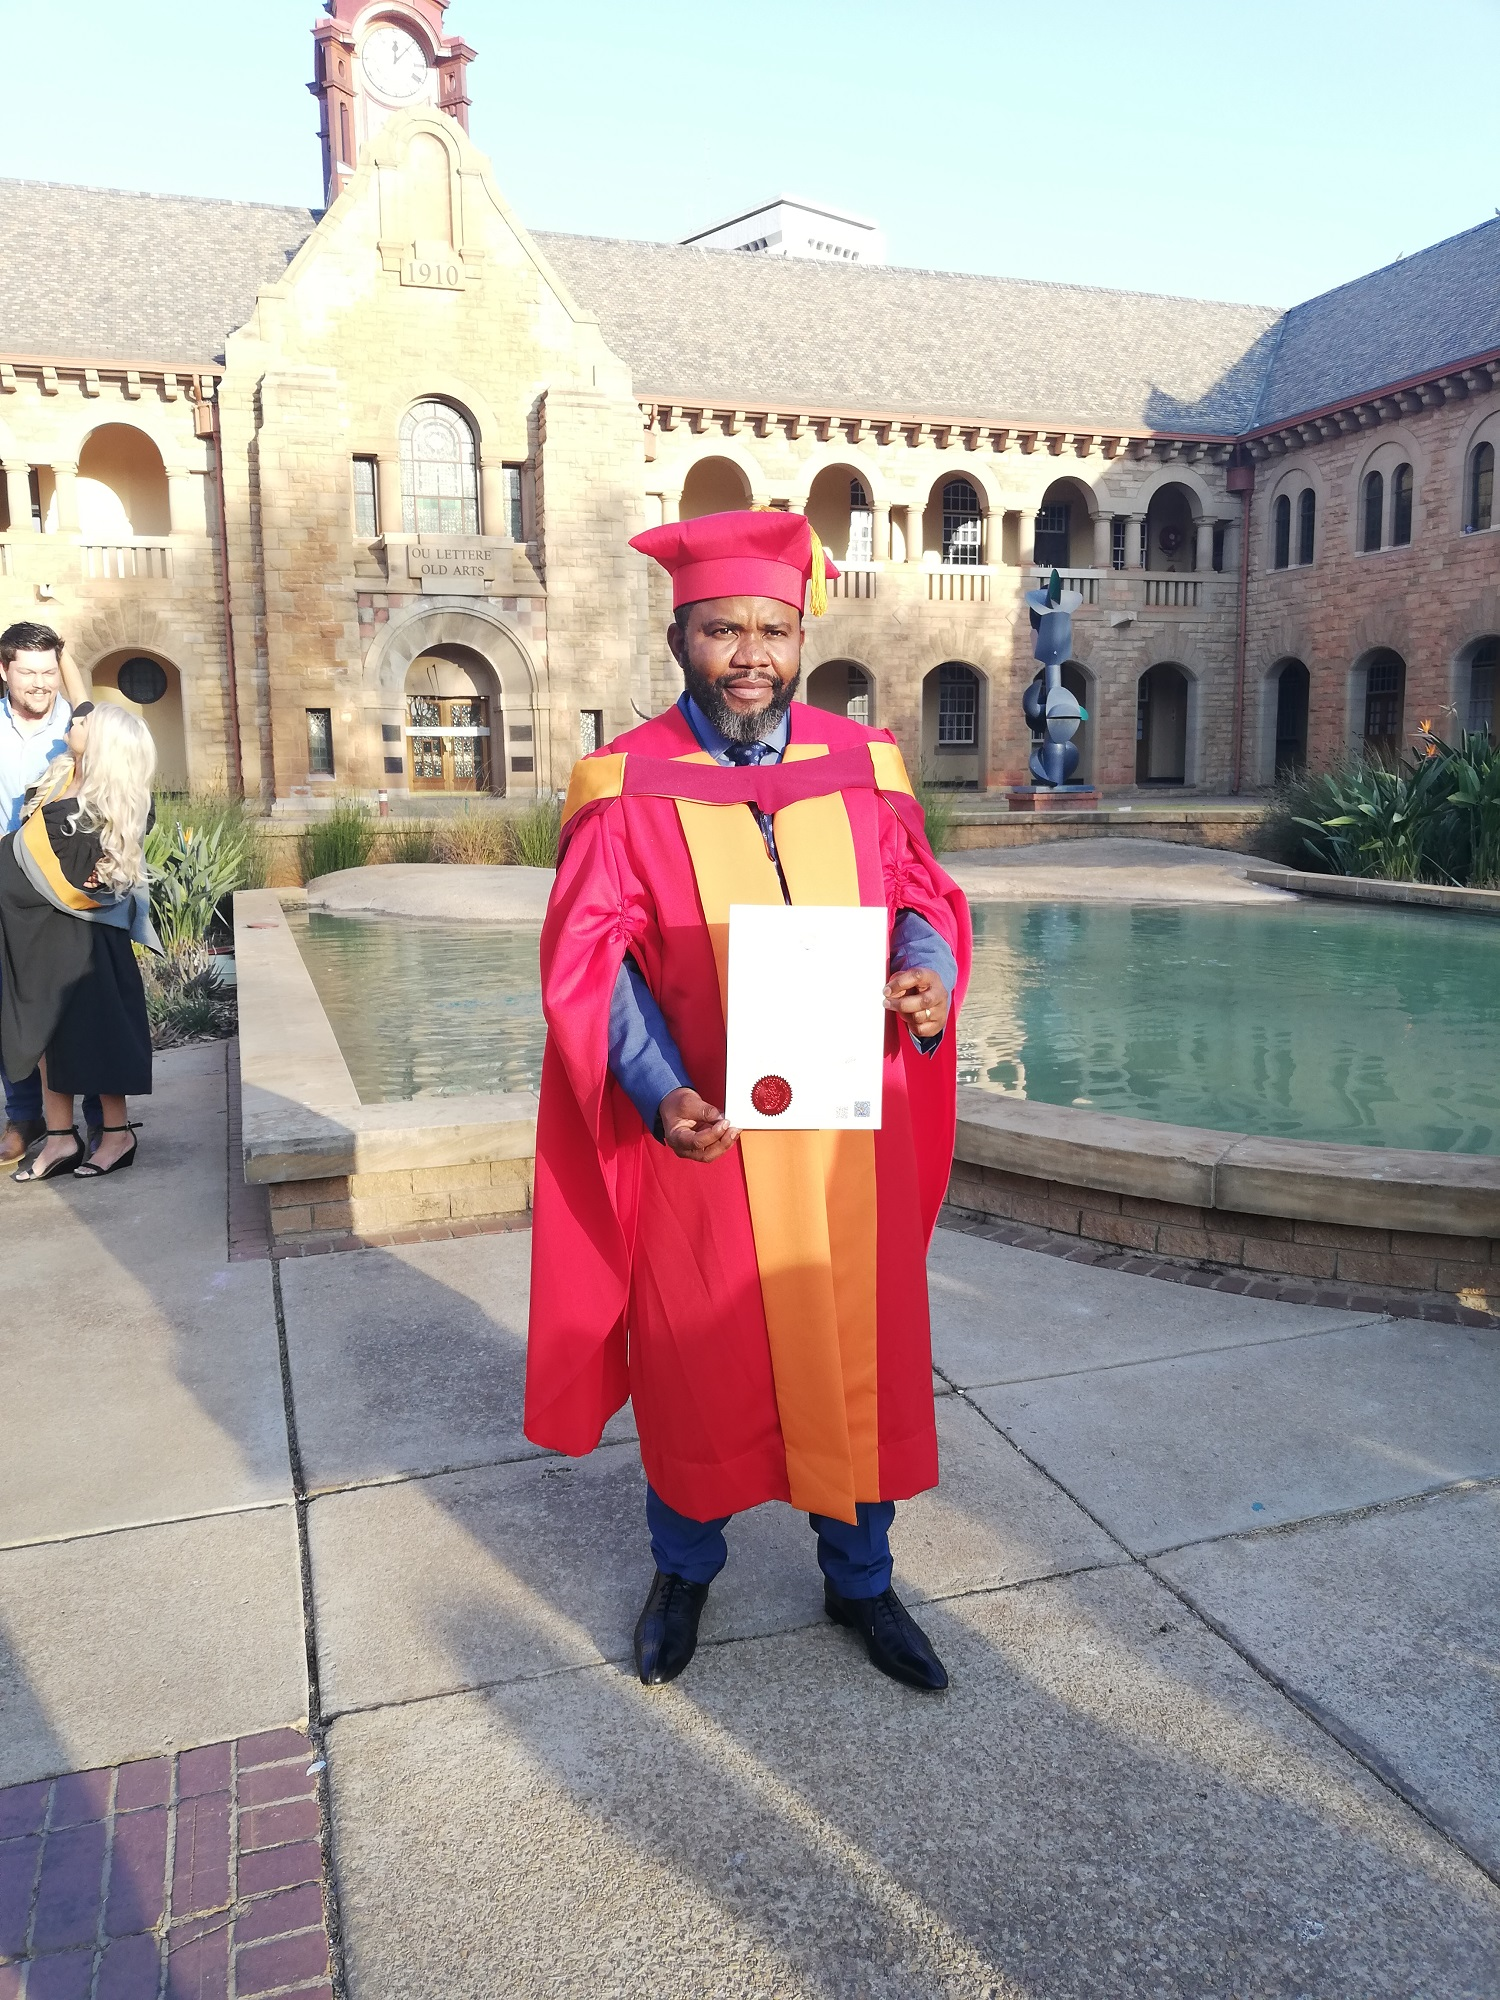 Leon Mwamba on the day of his graduation at the University of Pretoria.